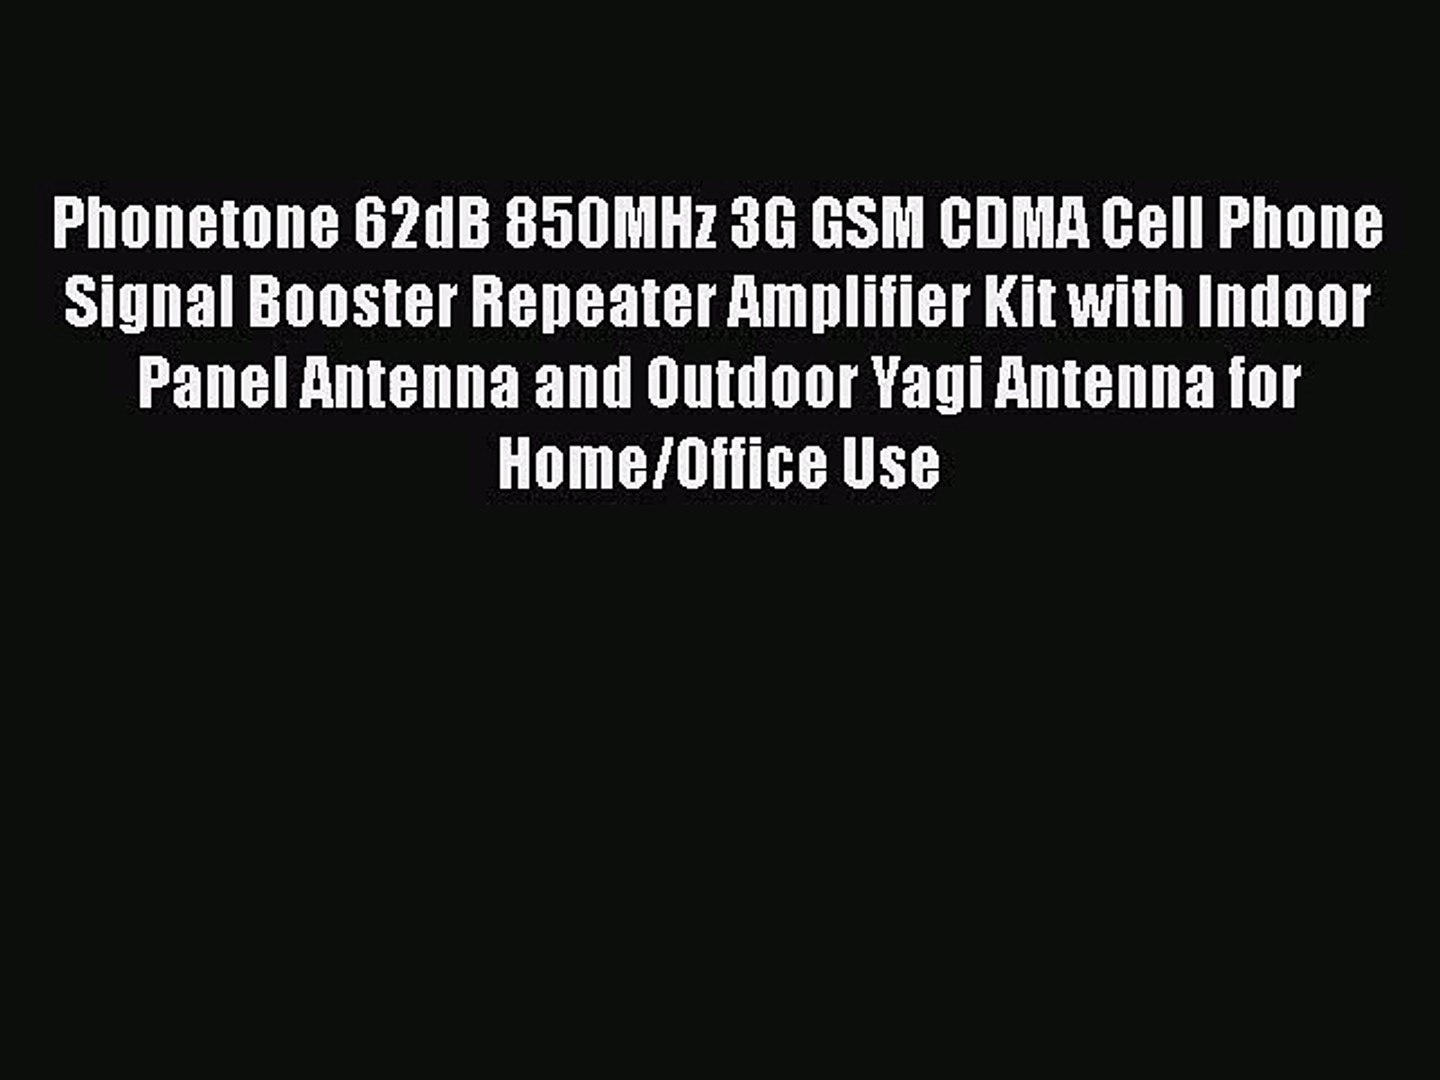 Phonetone 62dB 850MHz 3G GSM CDMA Cell Phone Signal Booster Repeater  Amplifier Kit with Indoor